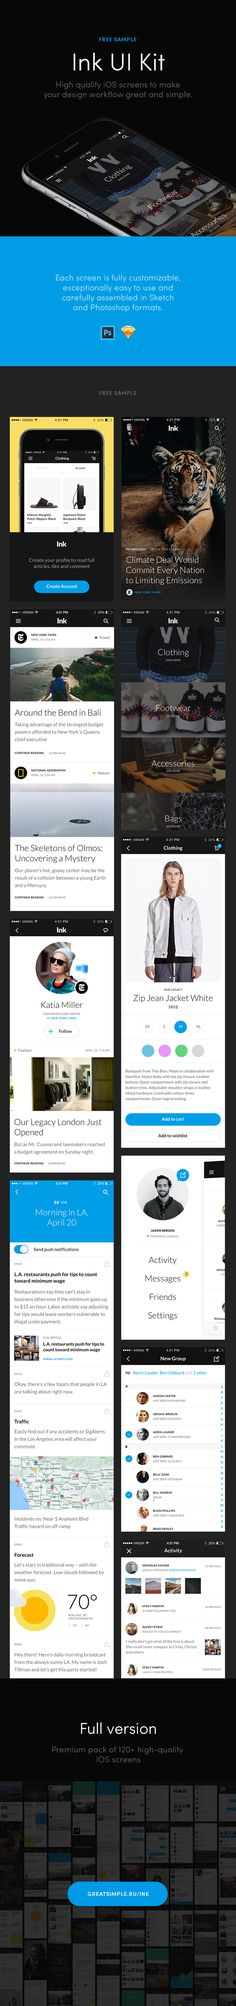 Treat yourself to this high quality iOS 8 UI kit created to simplify your workflow and help you create your own app. The Ink UI kit includes scr. Create Your Own App, Minimal Theme, Ios 8, Le Web, Free Graphics, Ui Kit, Ui Ux Design, Mobile Ui, Free Samples